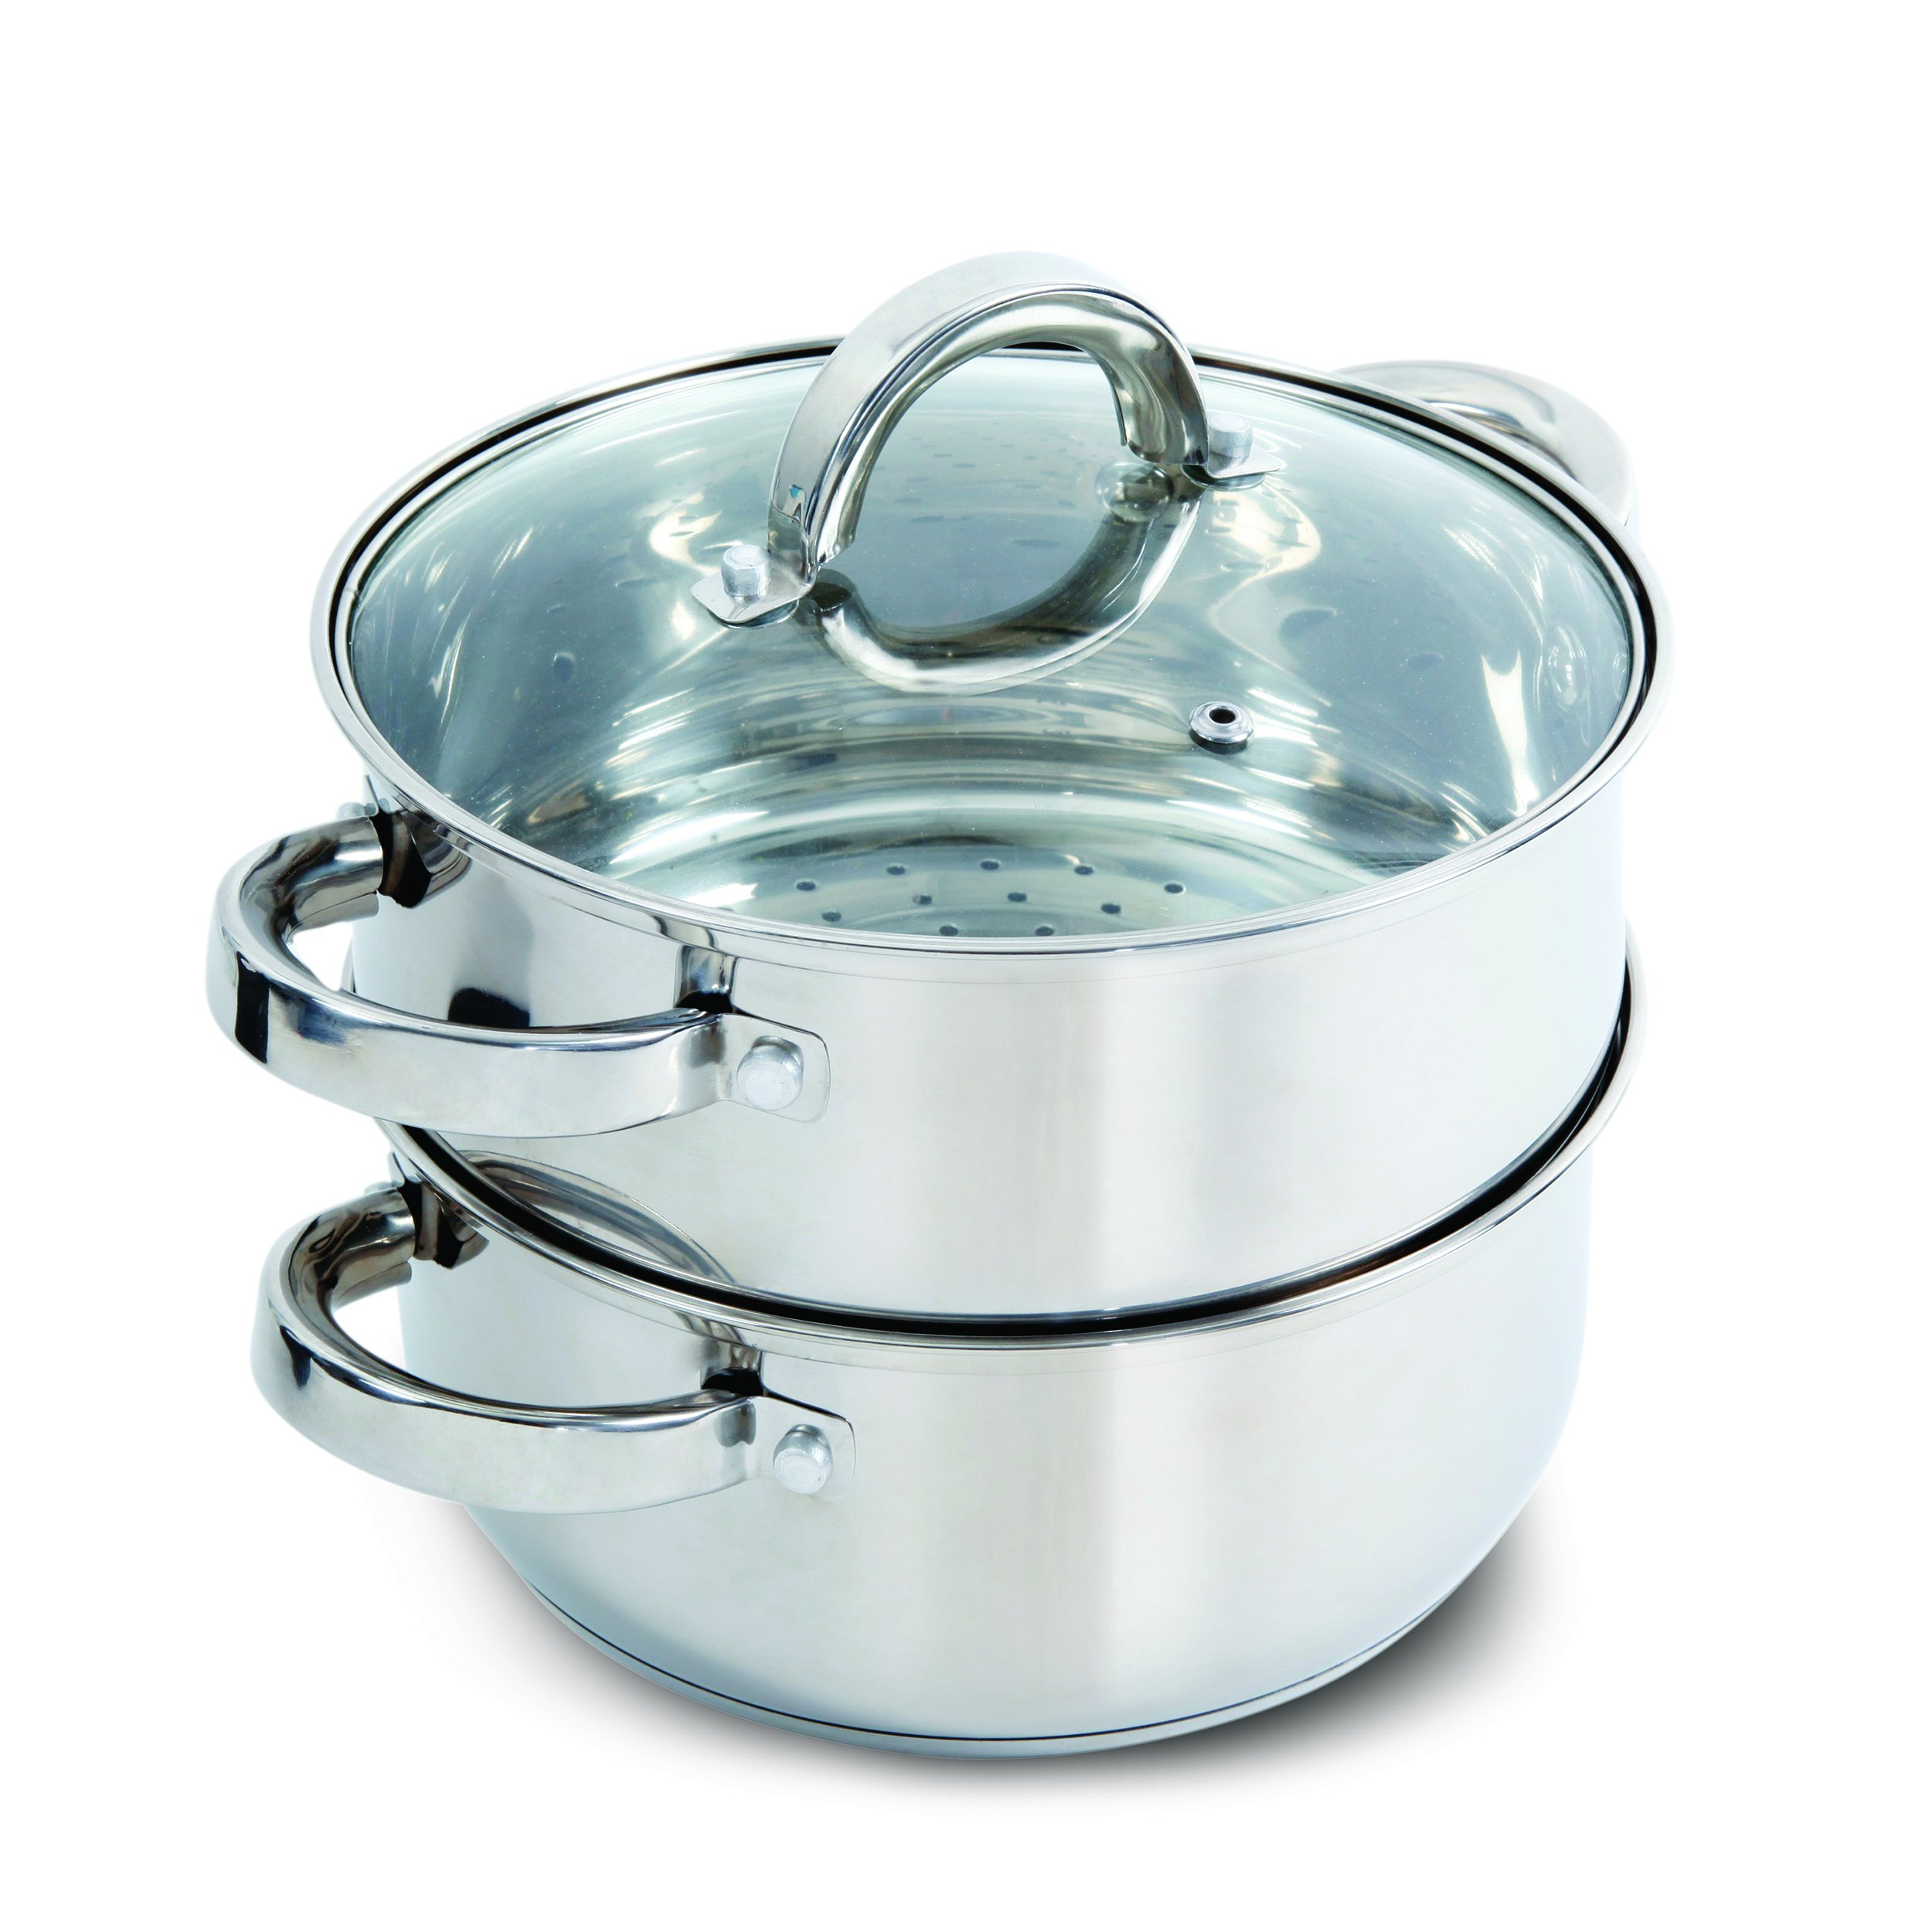 Oster 108132.03 Steamer, 1, Stainless Steel by OSTER